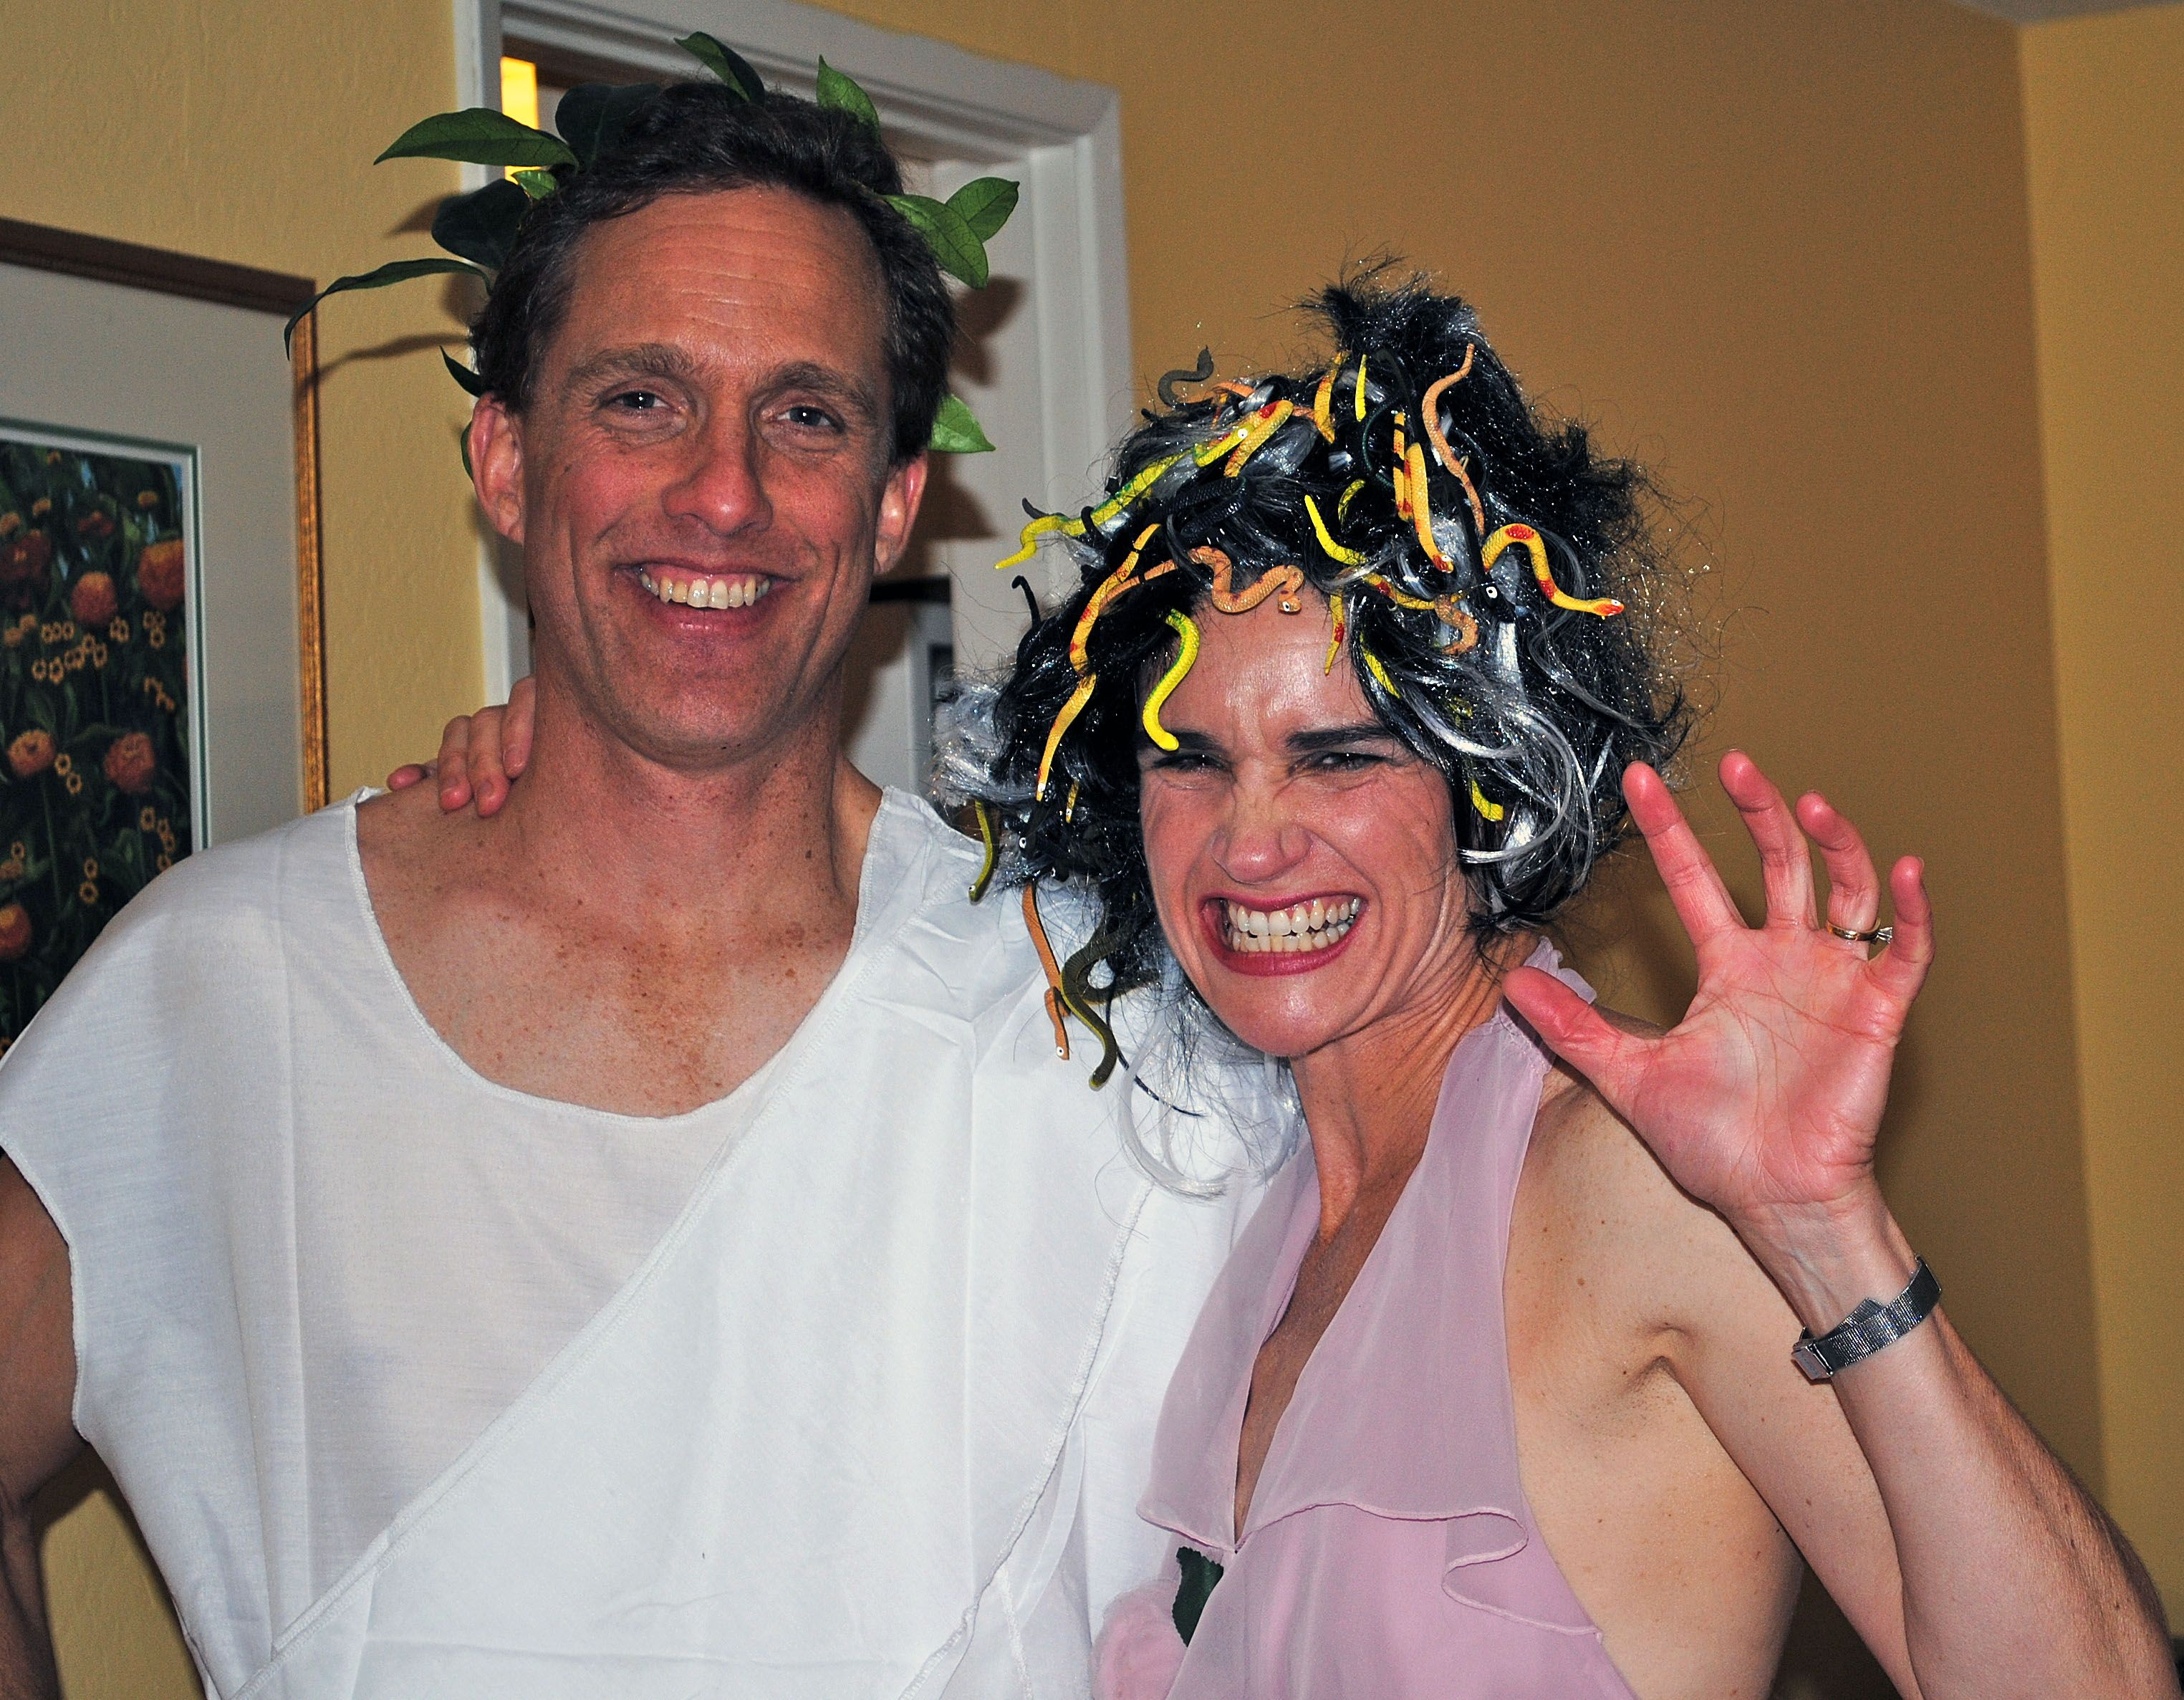 Perseus and Medusa - costume ideas blog  sc 1 st  Pinterest & Perseus and Medusa - costume ideas blog | Halloween - Ideas and ...